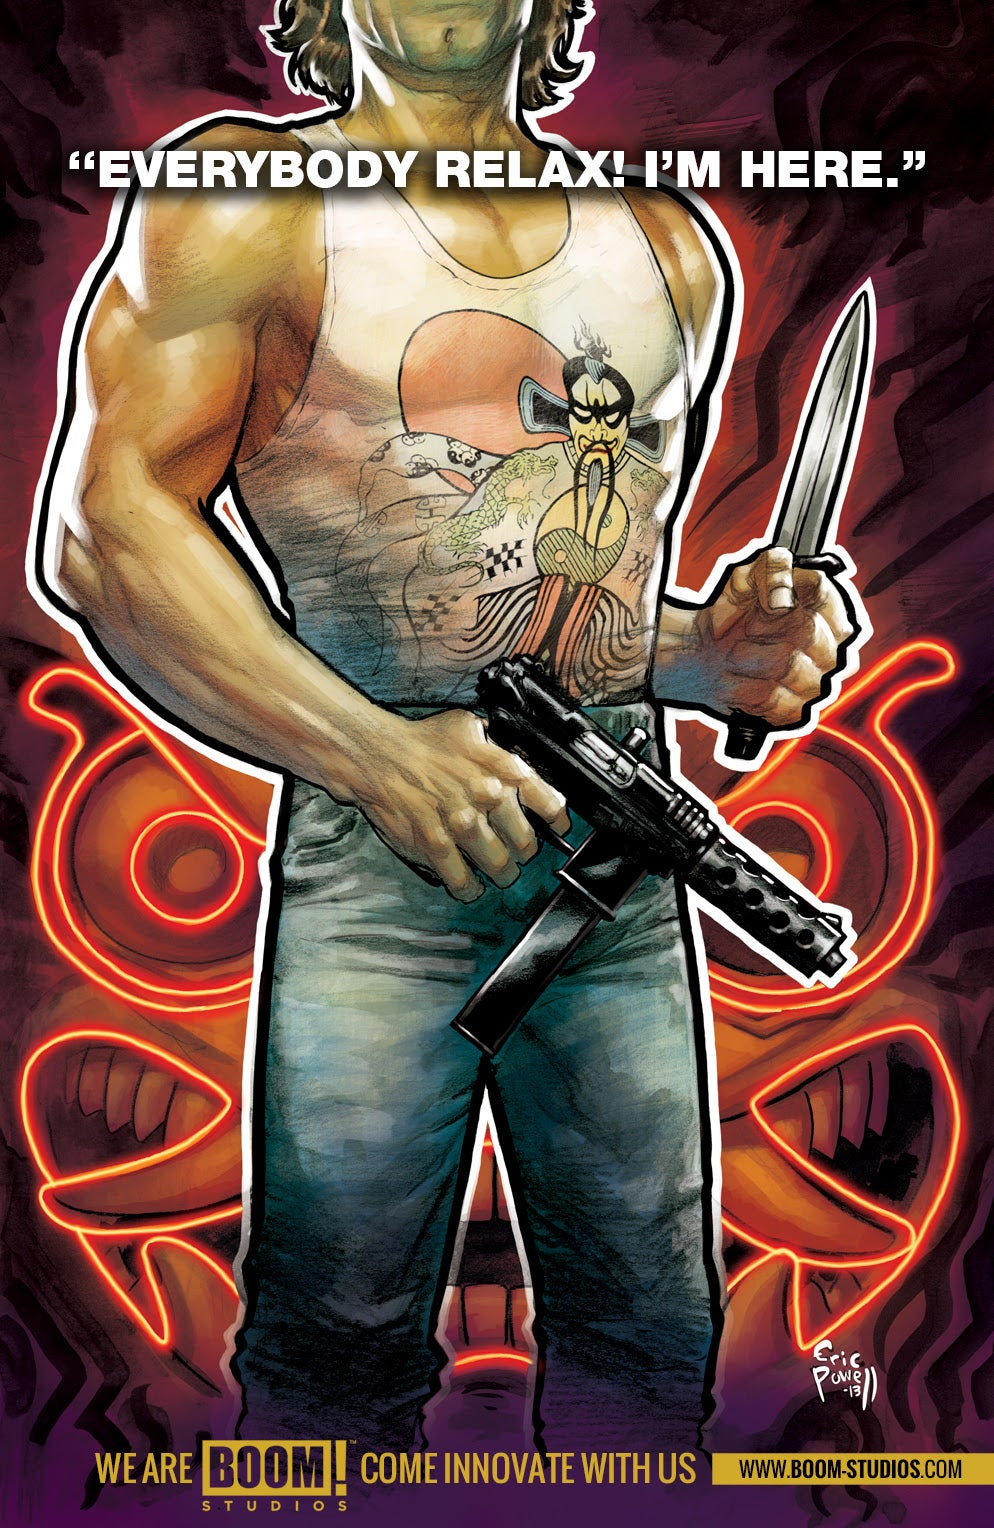 Jack Burton returns in the new Big Trouble in Little China comic!